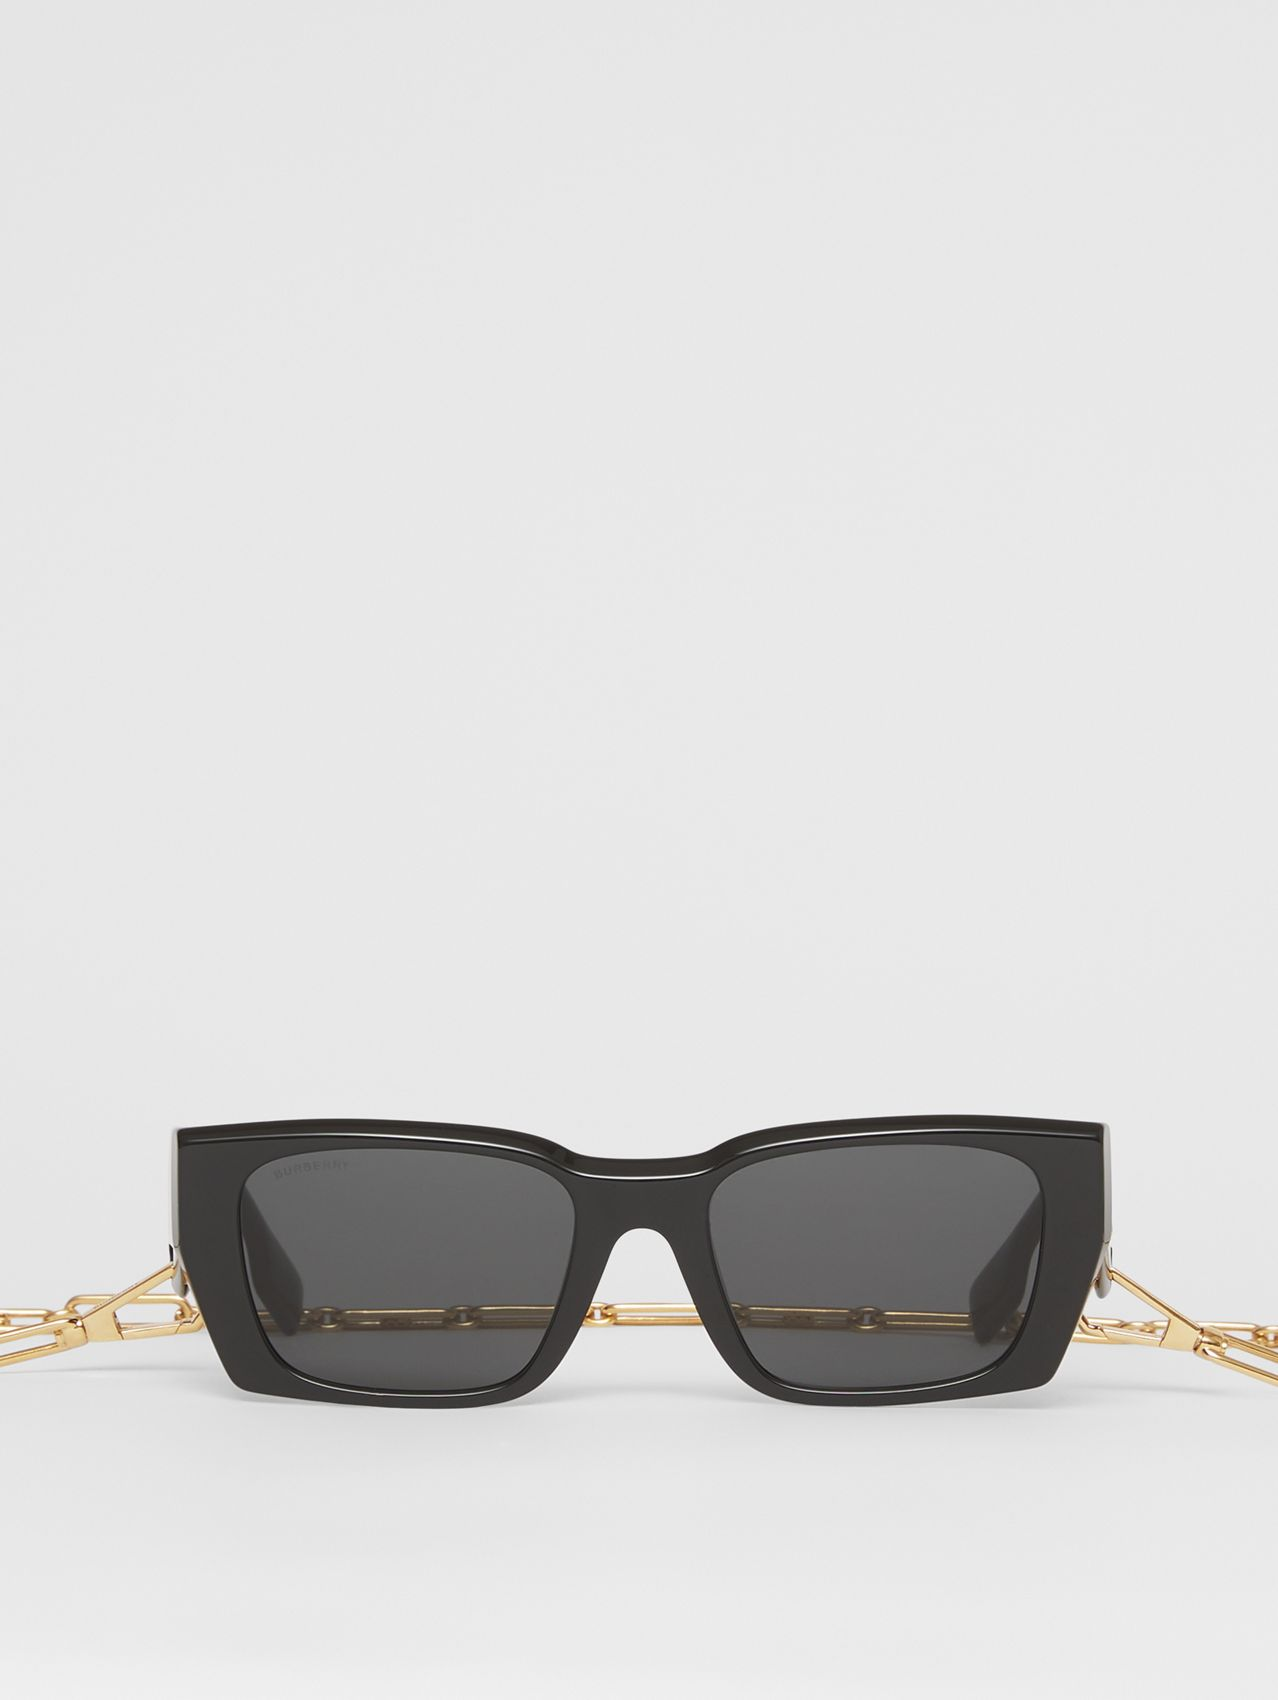 B Motif Rectangular Frame Sunglasses with Chain in Black